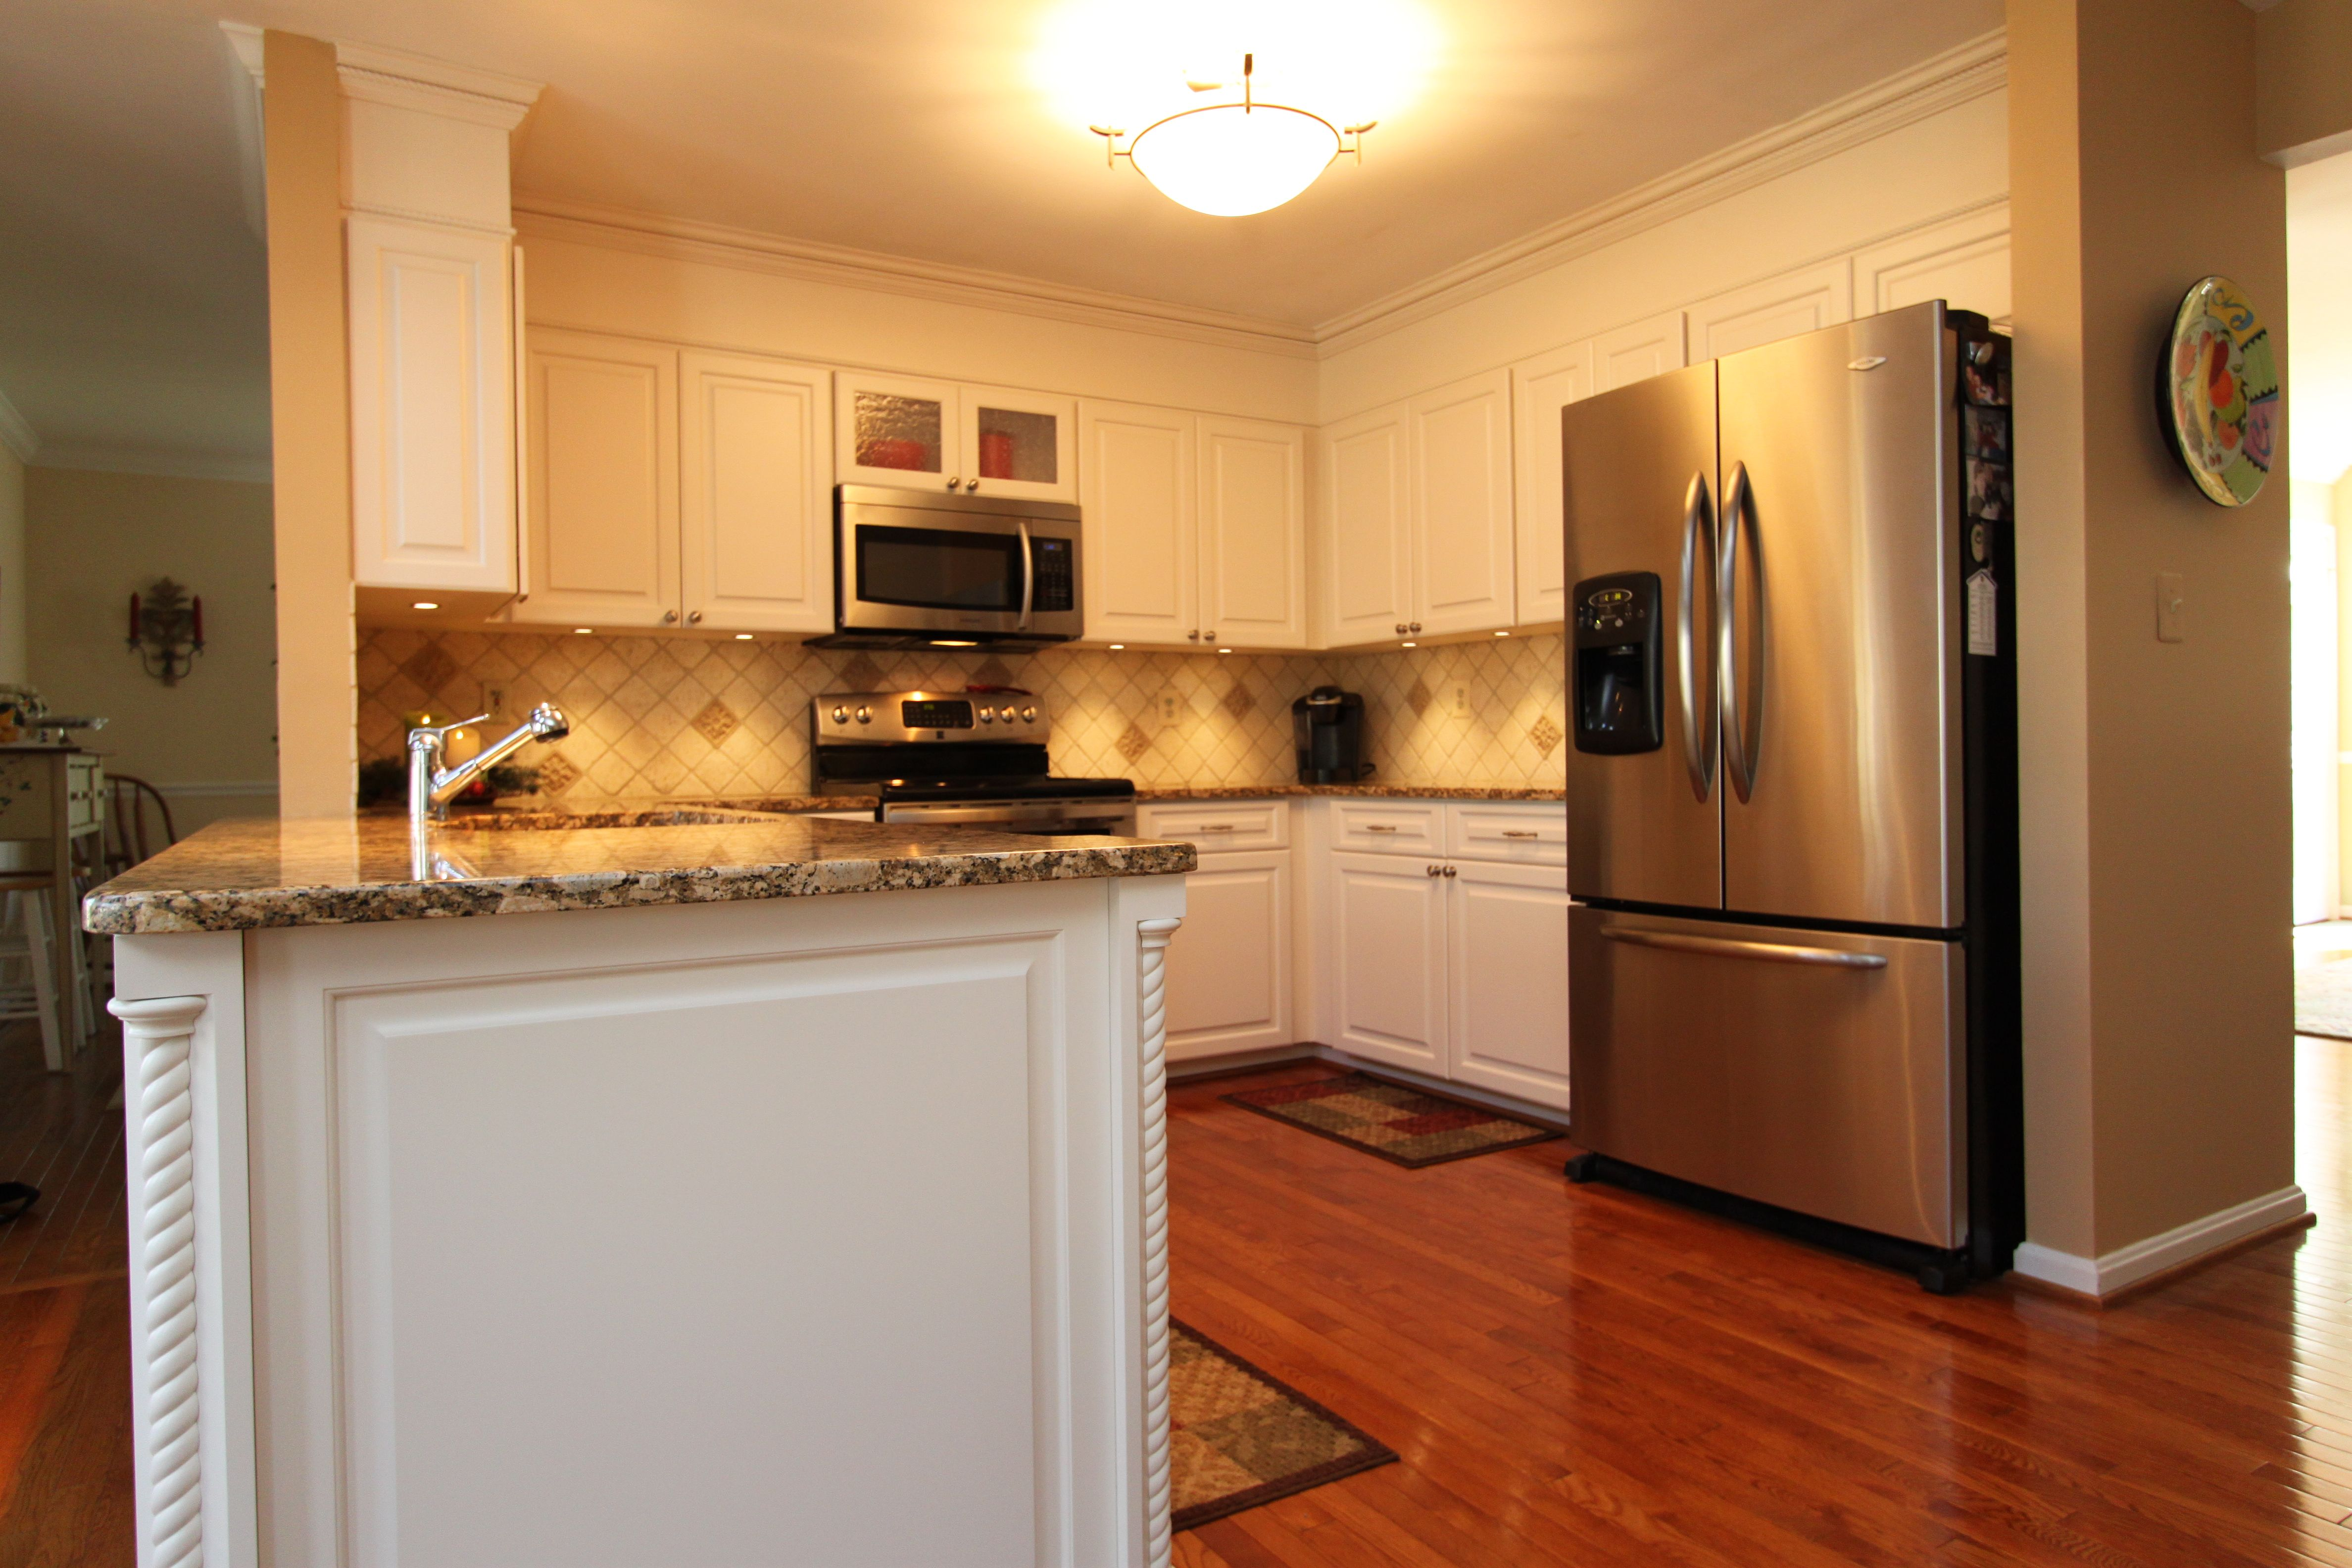 Transitional Style White Kitchen With Tan Granite Countertops In Ellicott City Maryland The Decorative Rope Corner Posts Combine Raised Panel